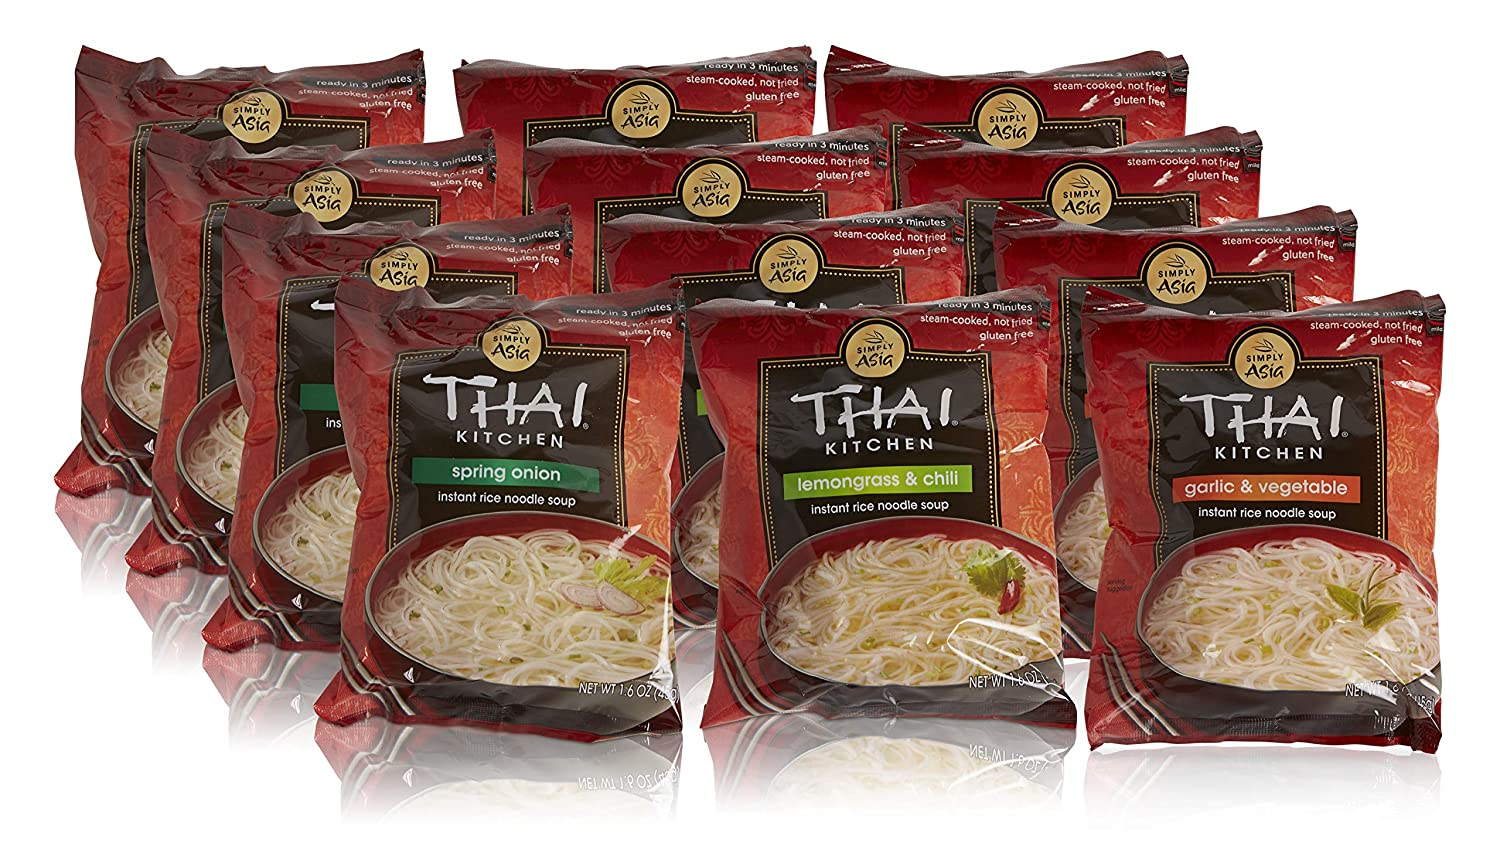 Thai Kitchen Instant Rice Noodle Soup Variety Pack Gluten Free Ramen Ready In 3 Minutes 1 6oz Pack Of 12